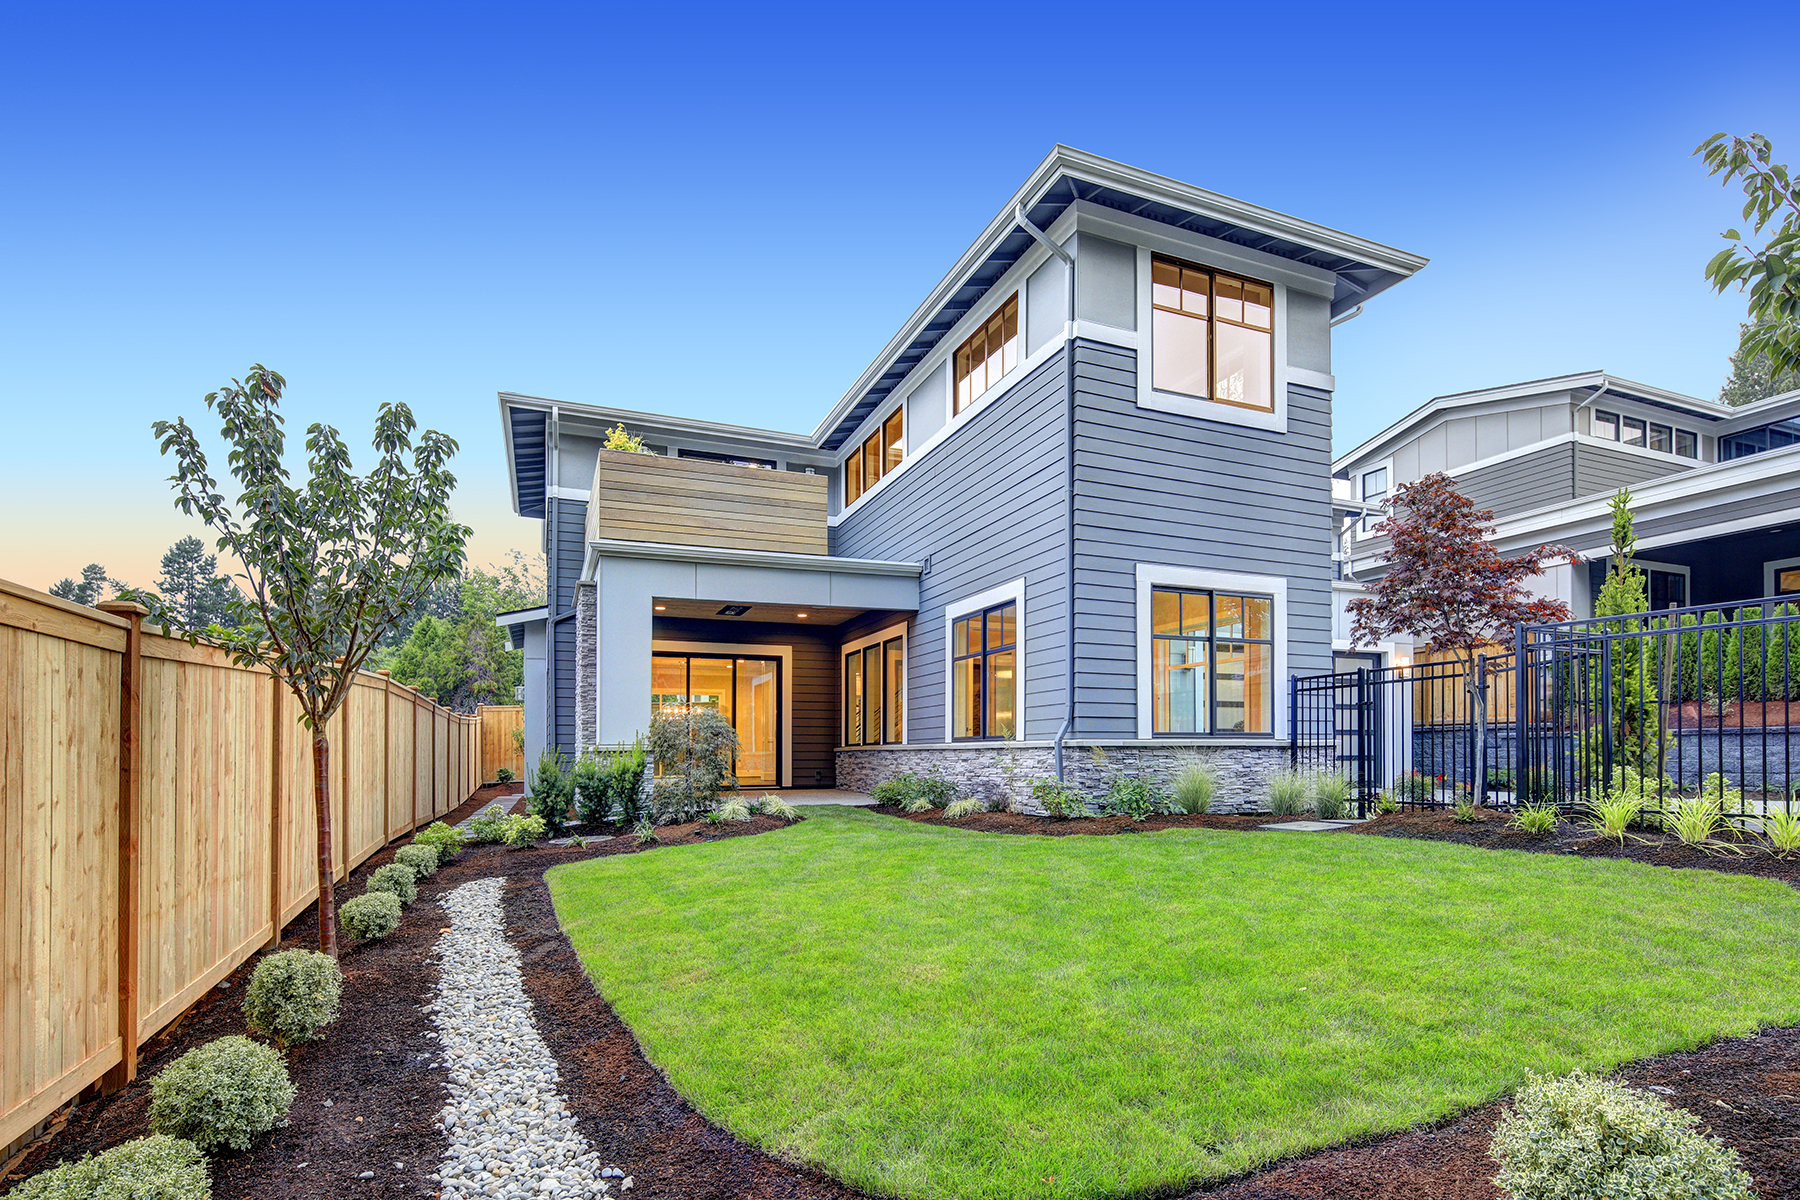 Tips for Staging Your Home's Exterior in Summer